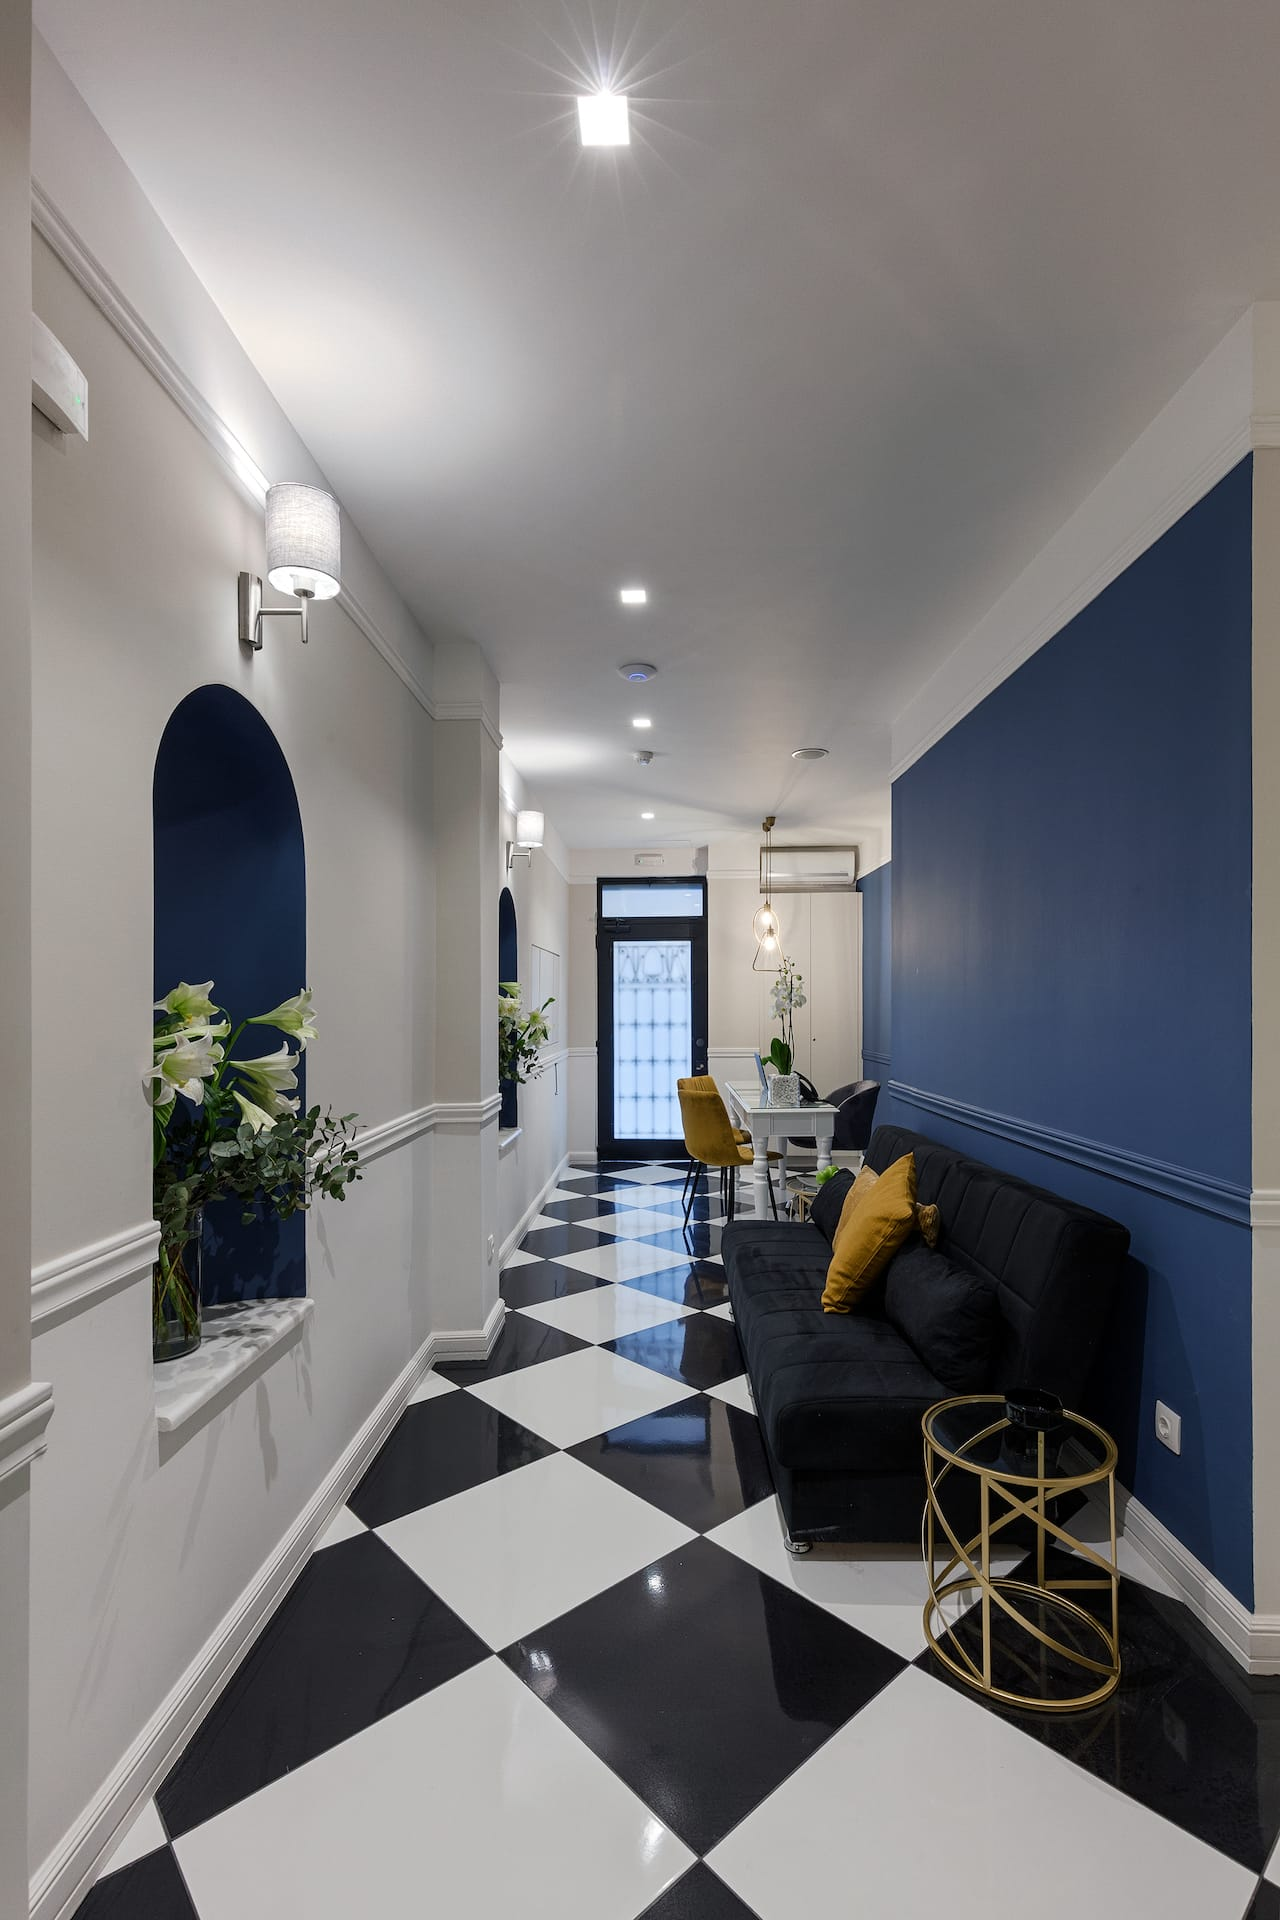 The reception area lounge of the Classic by Athens Prime Hotels. Dark blue sofa with yellow pillows.